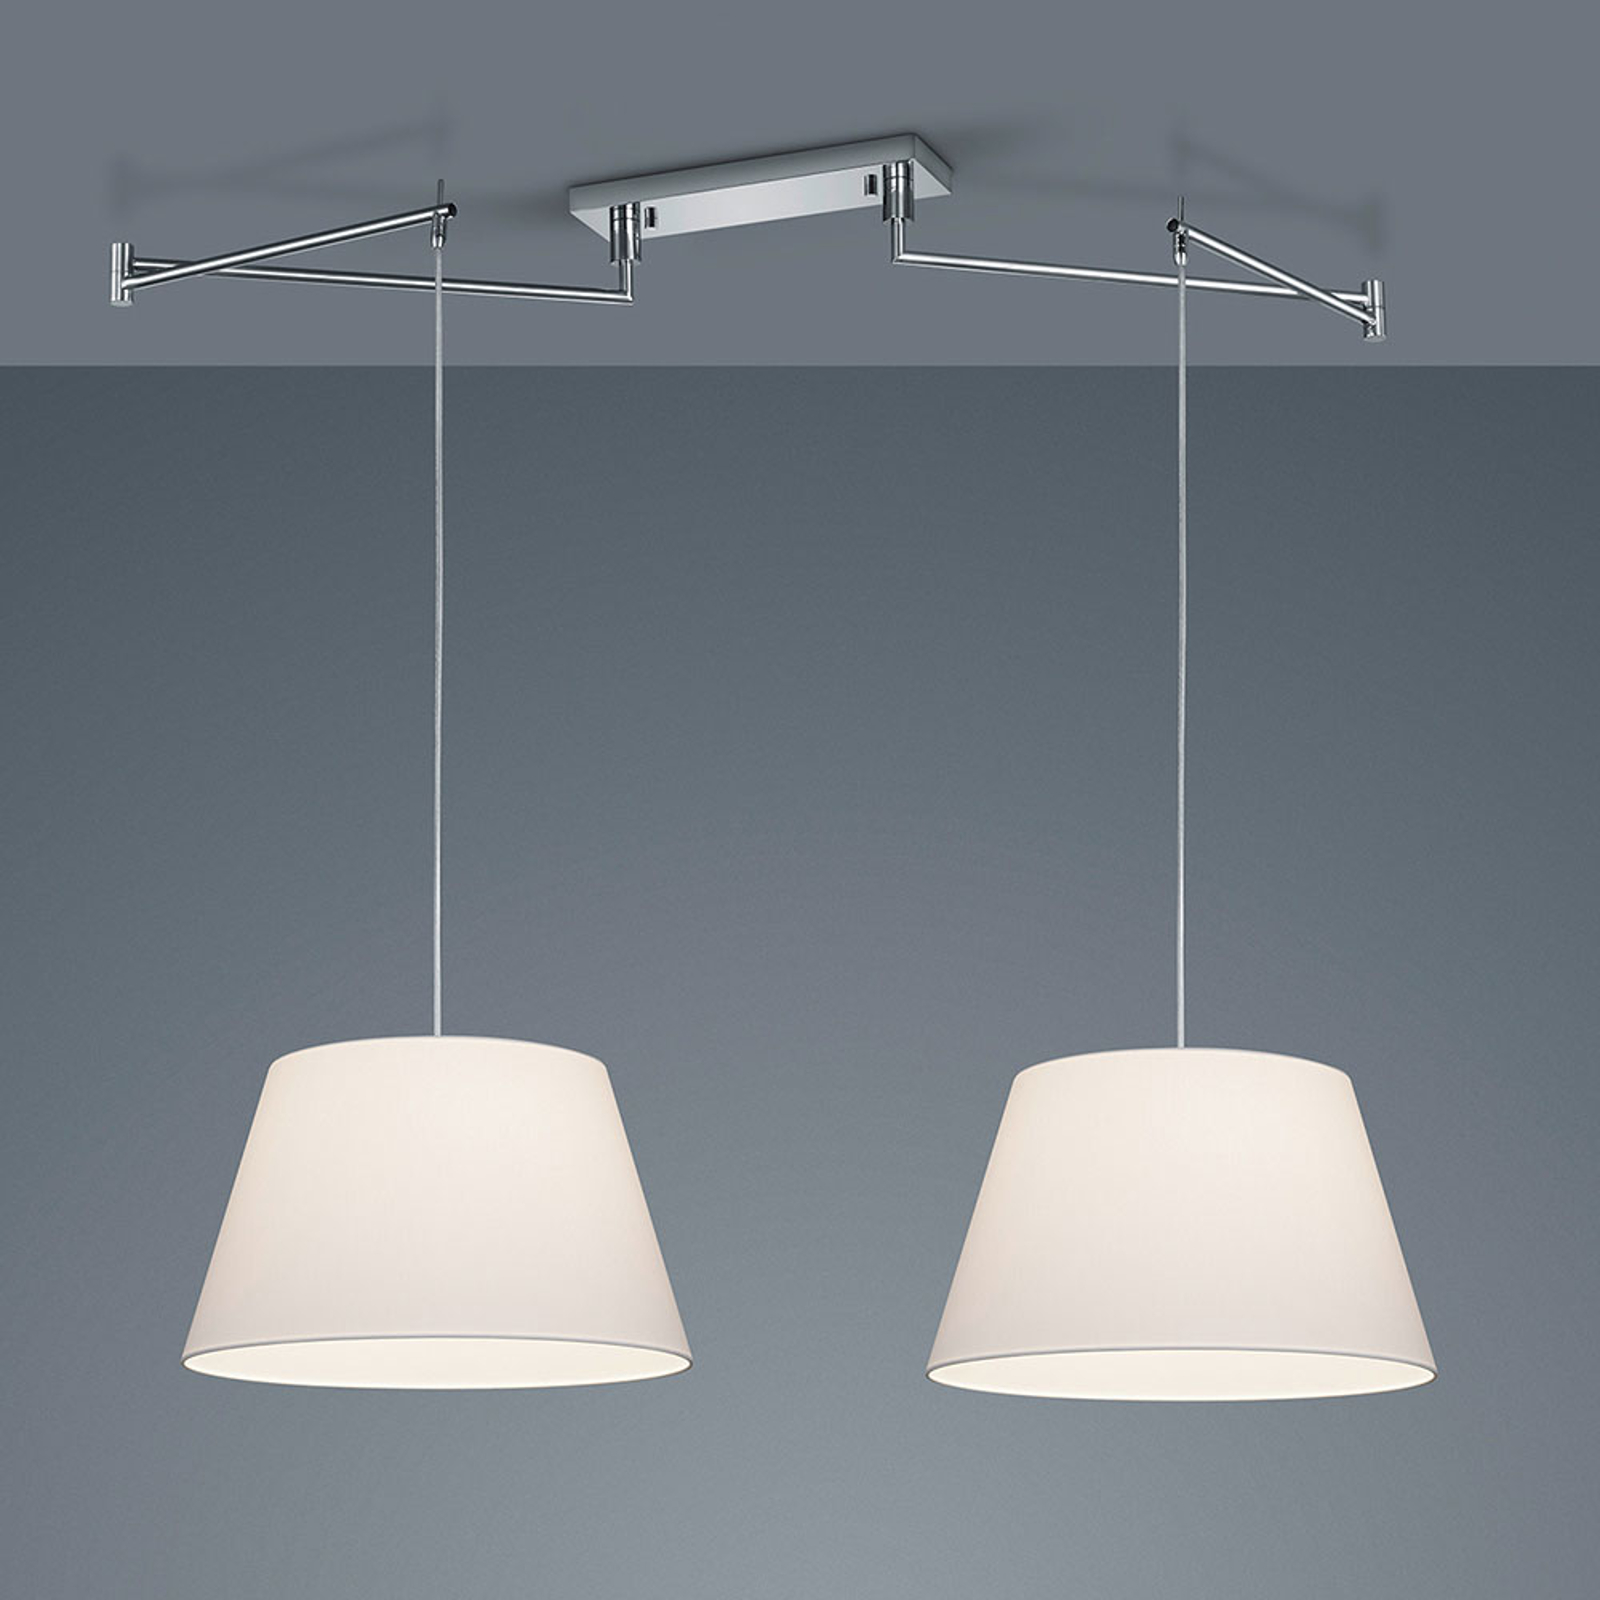 Helestra Certo suspension conique 2 lampes blanche